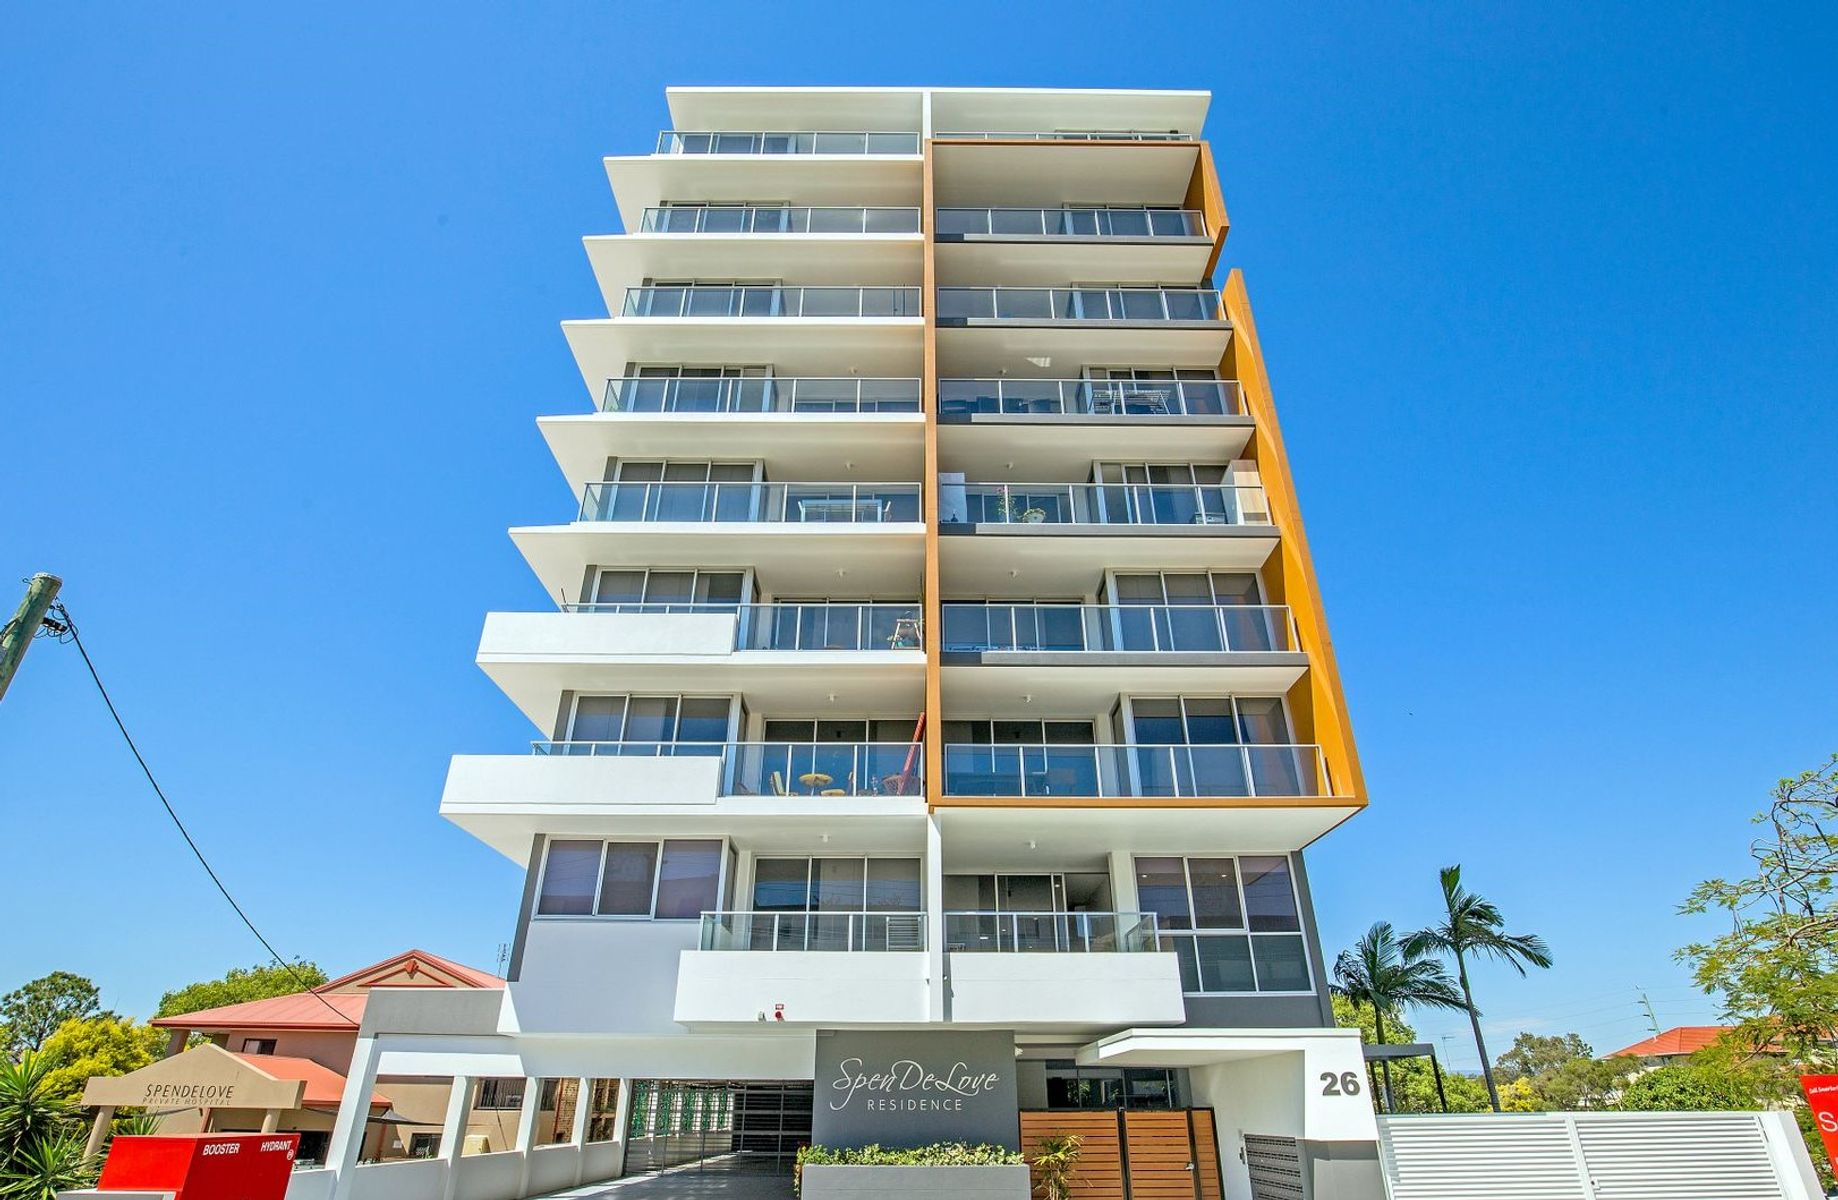 602/26 Spendelove Avenue, Southport, QLD 4215